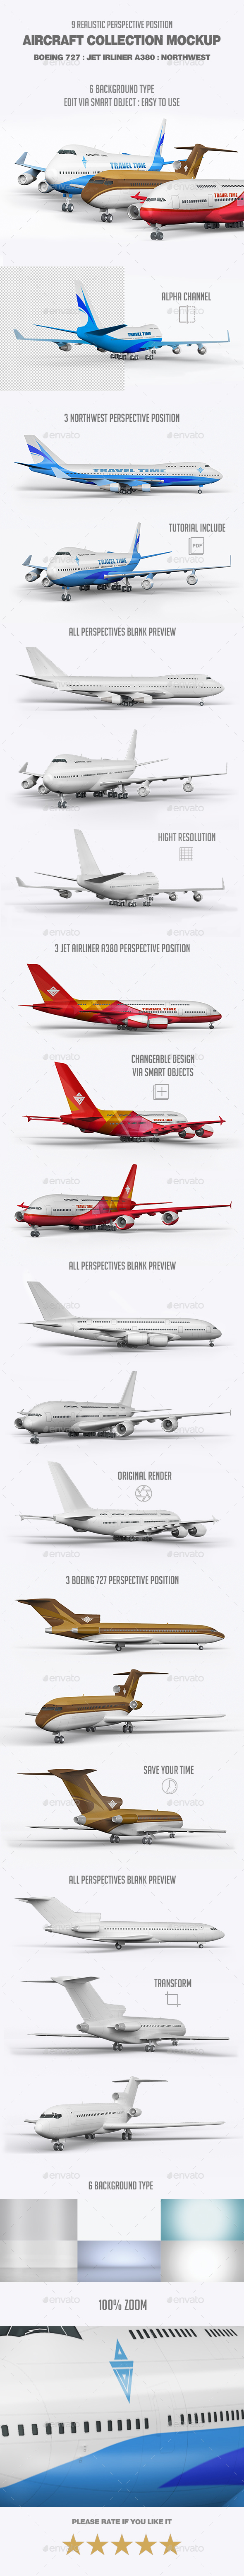 Aircraft Collection Mock-Up - Vehicle Wraps Print